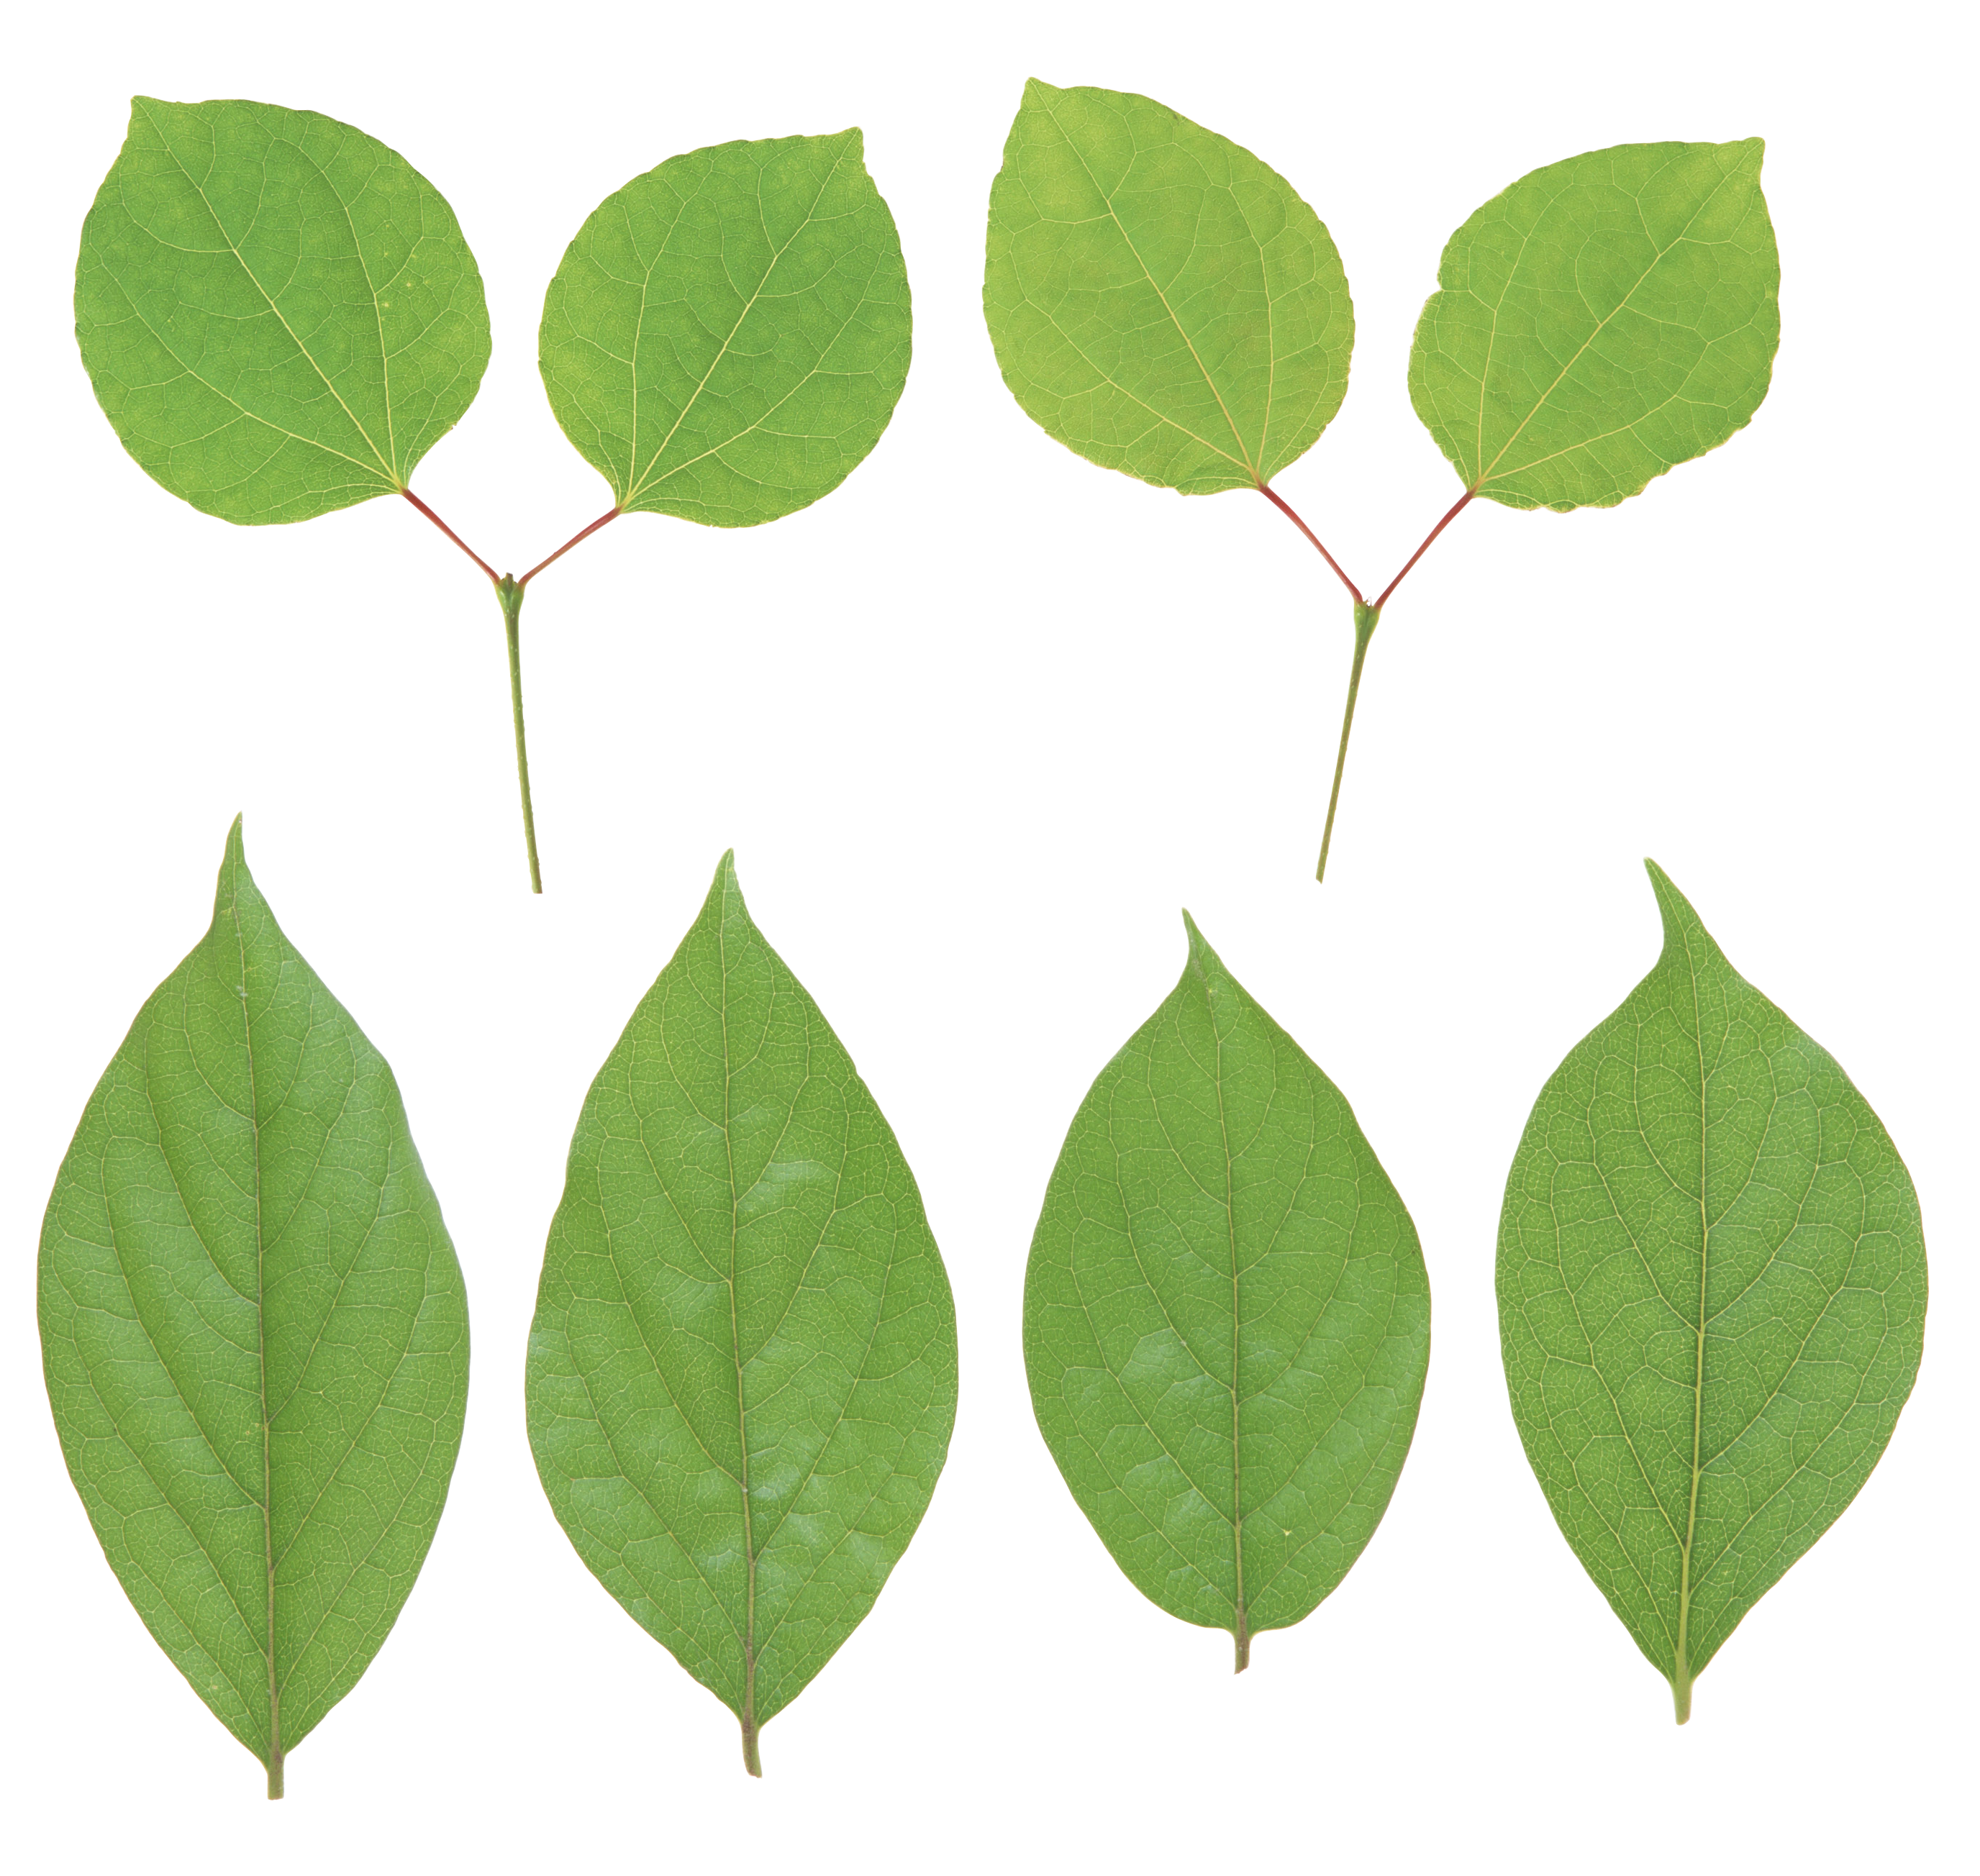 Green leaves PNG image free Download